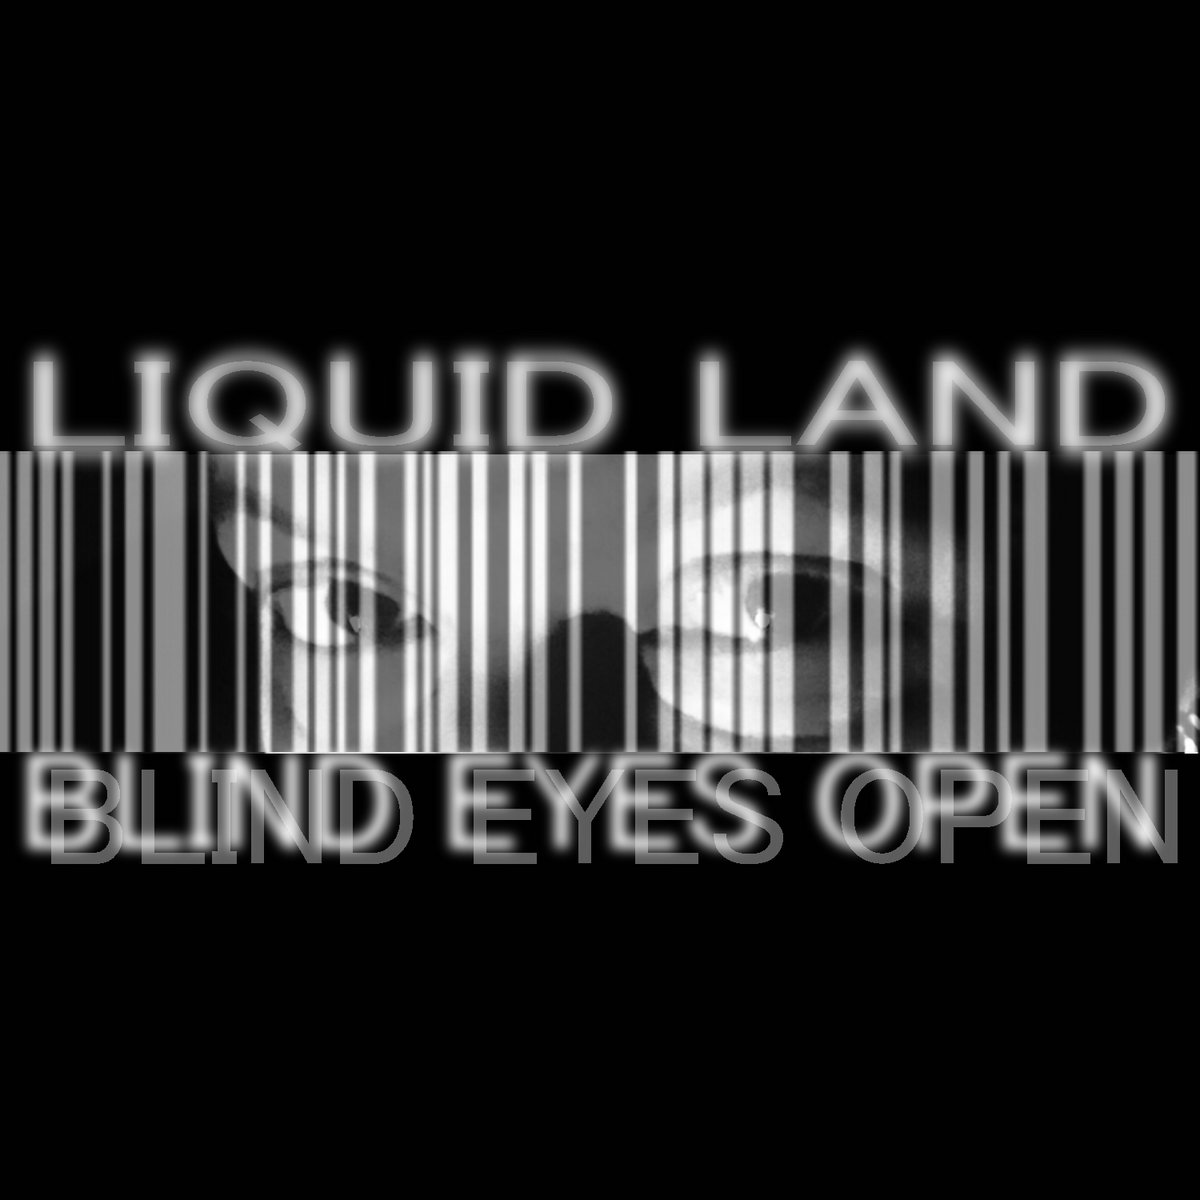 Liquid Land cover